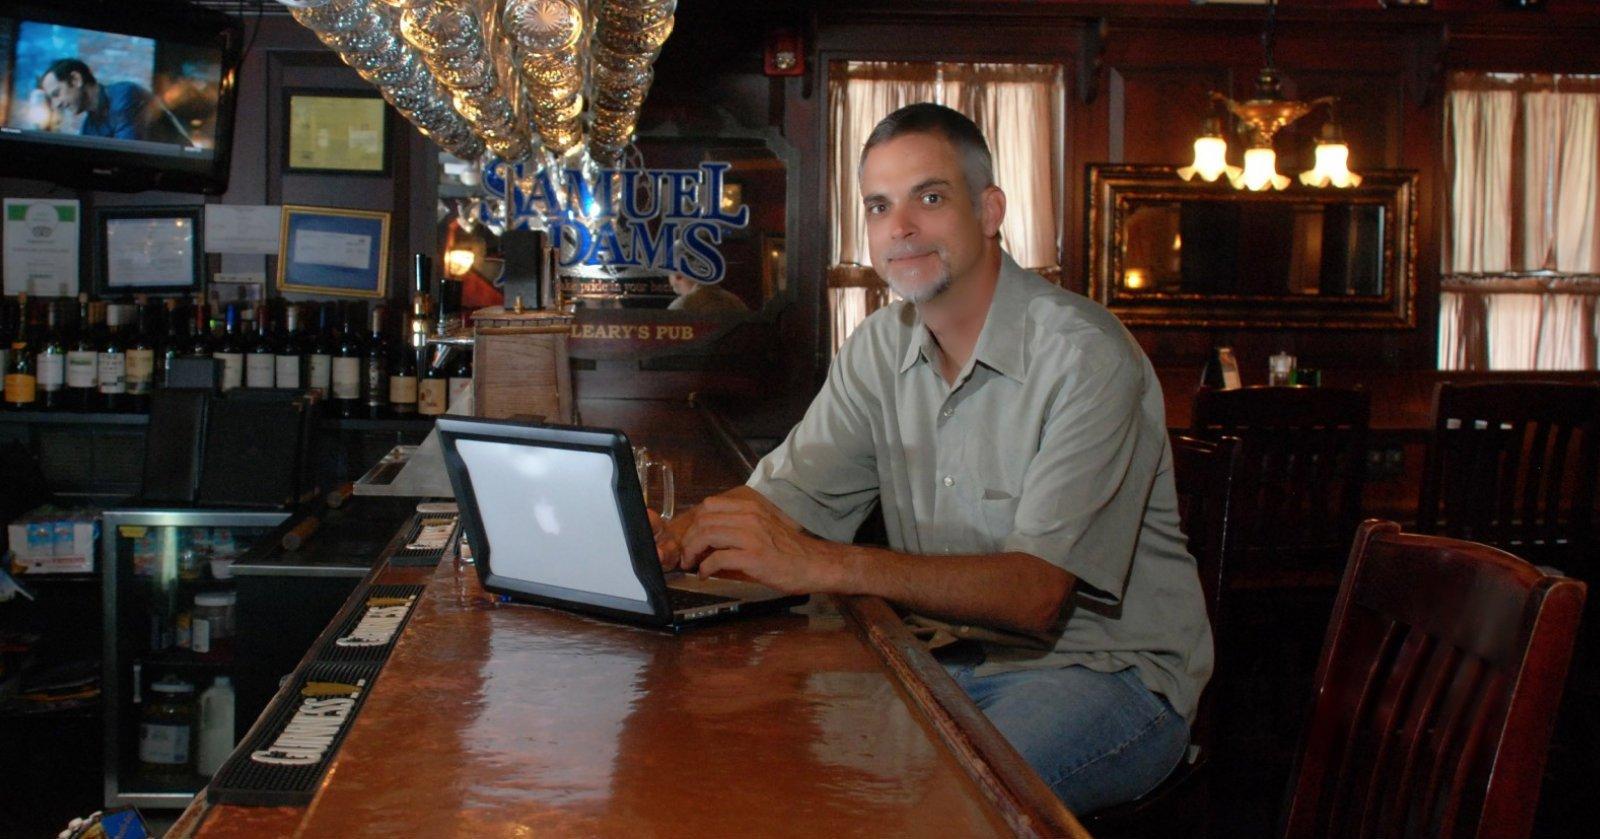 Image of Mark McGuire working on his laptop at the bar.